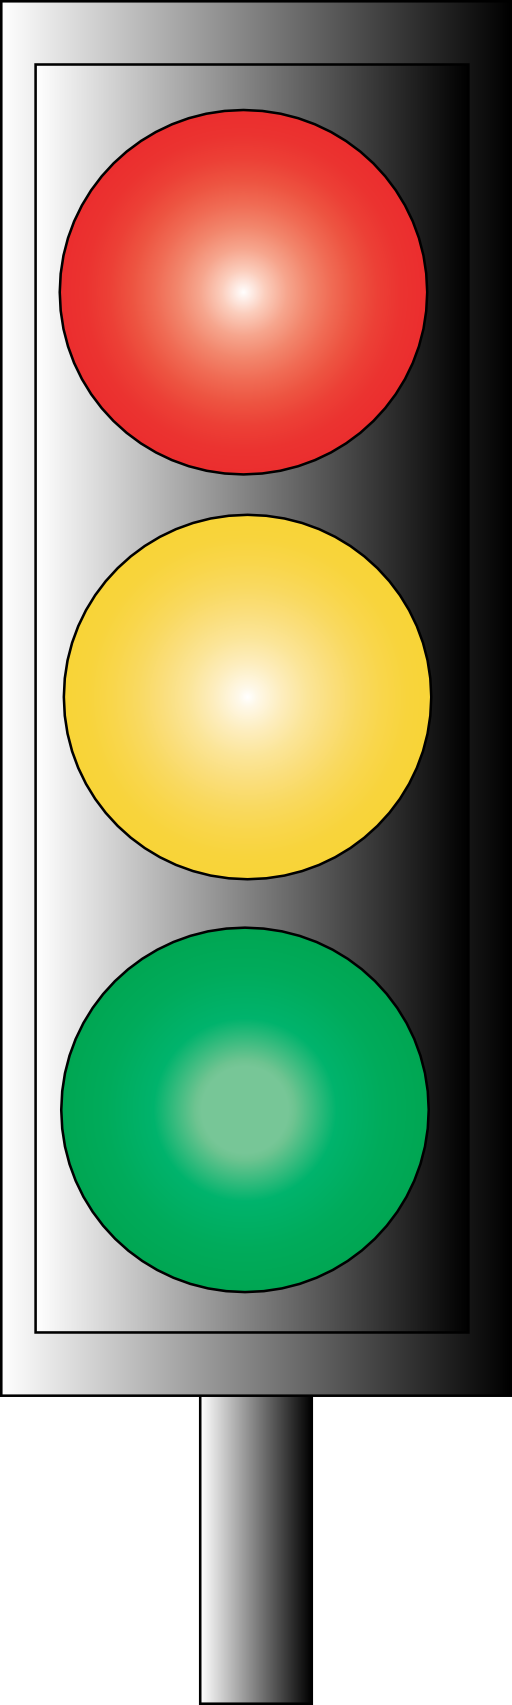 Traffic Lights Clipart | i2Clipart - Royalty Free Public ...